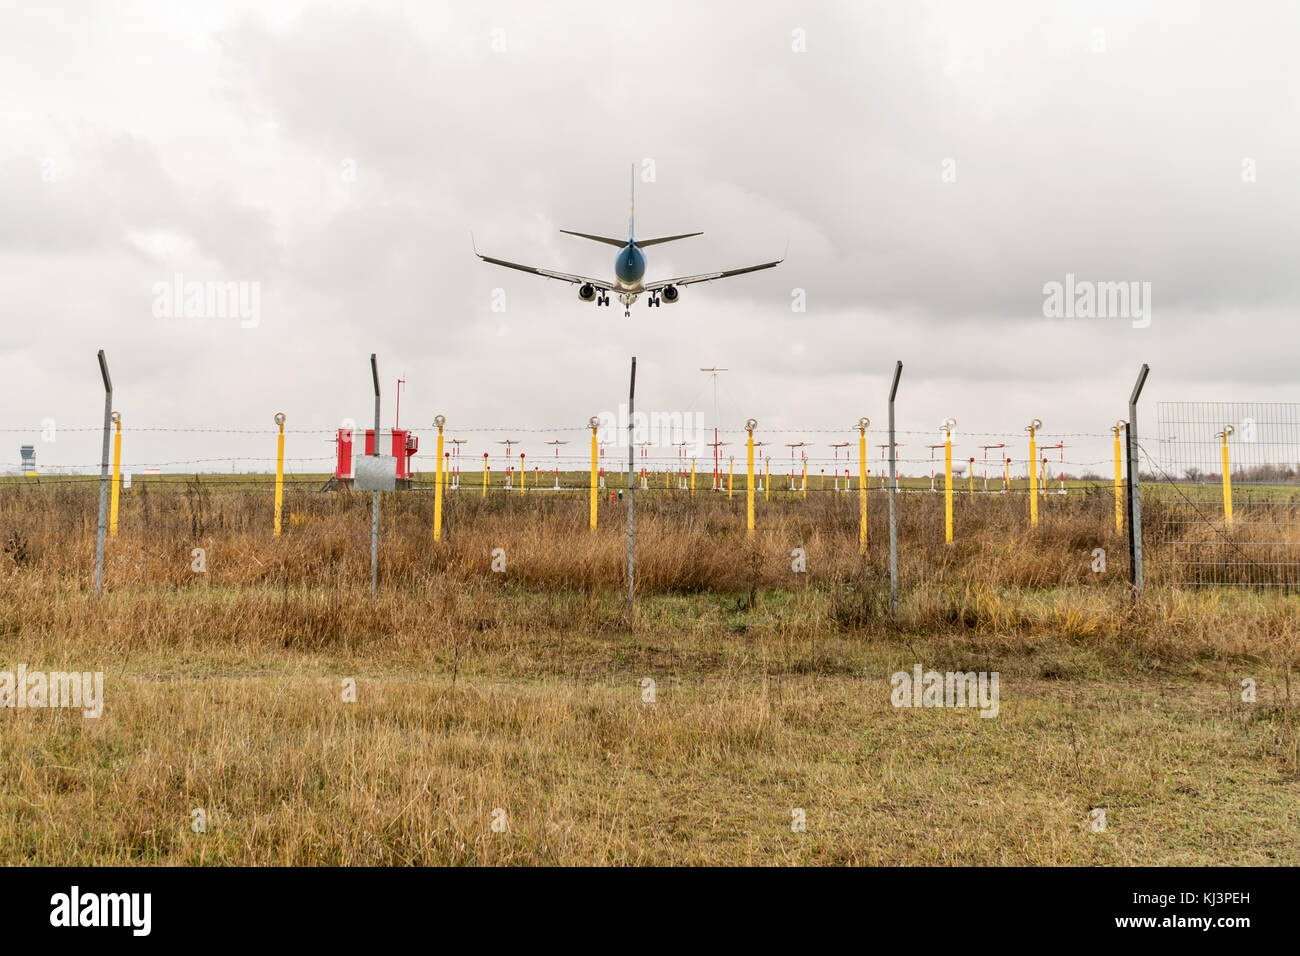 Landing of a large civil aircraft over the landing lights of the airfield, rear view - Stock Image